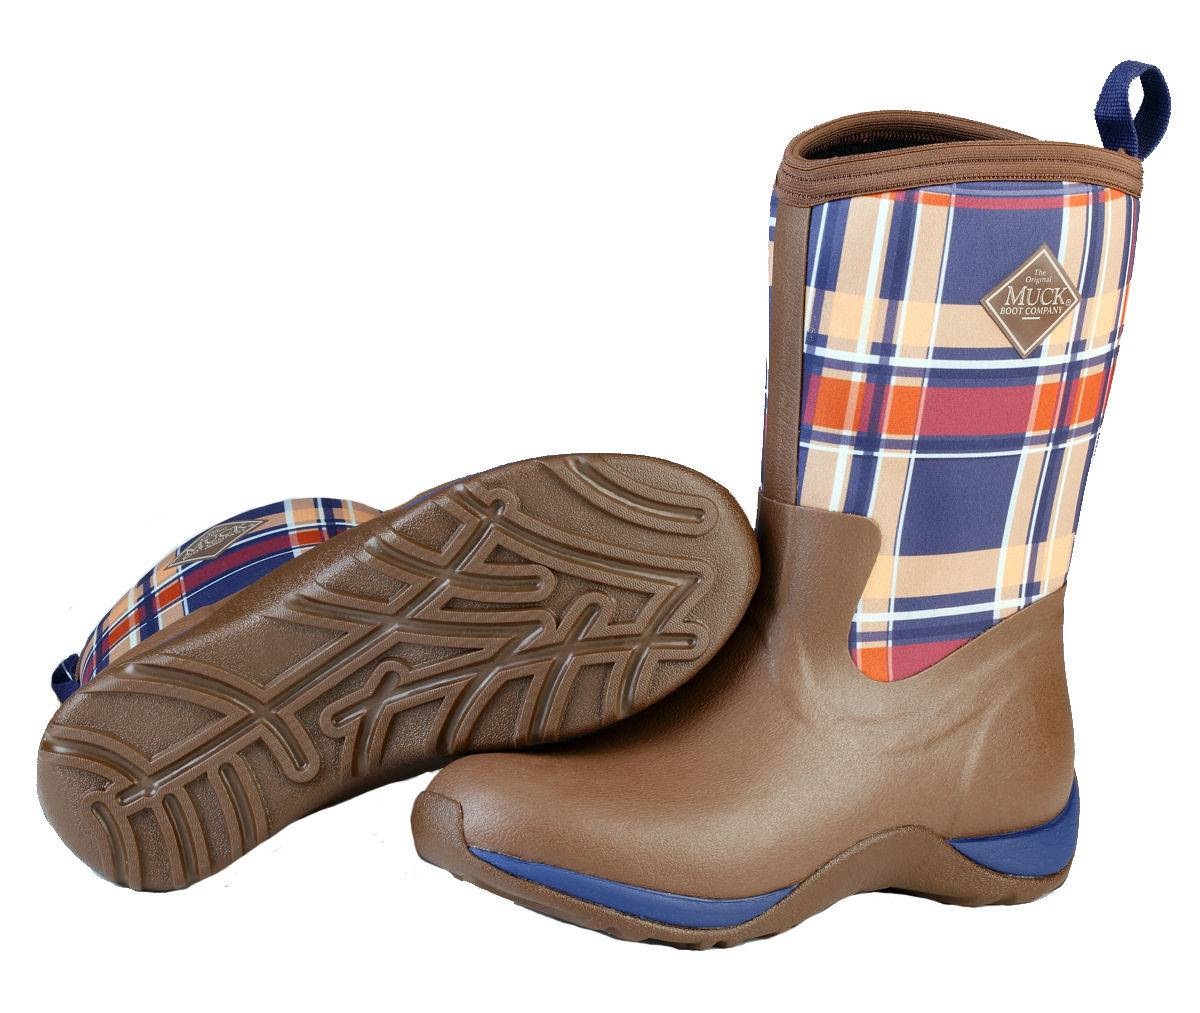 Muck Boots Arctic Weekend - Ladies - Brown/Navy Plaid